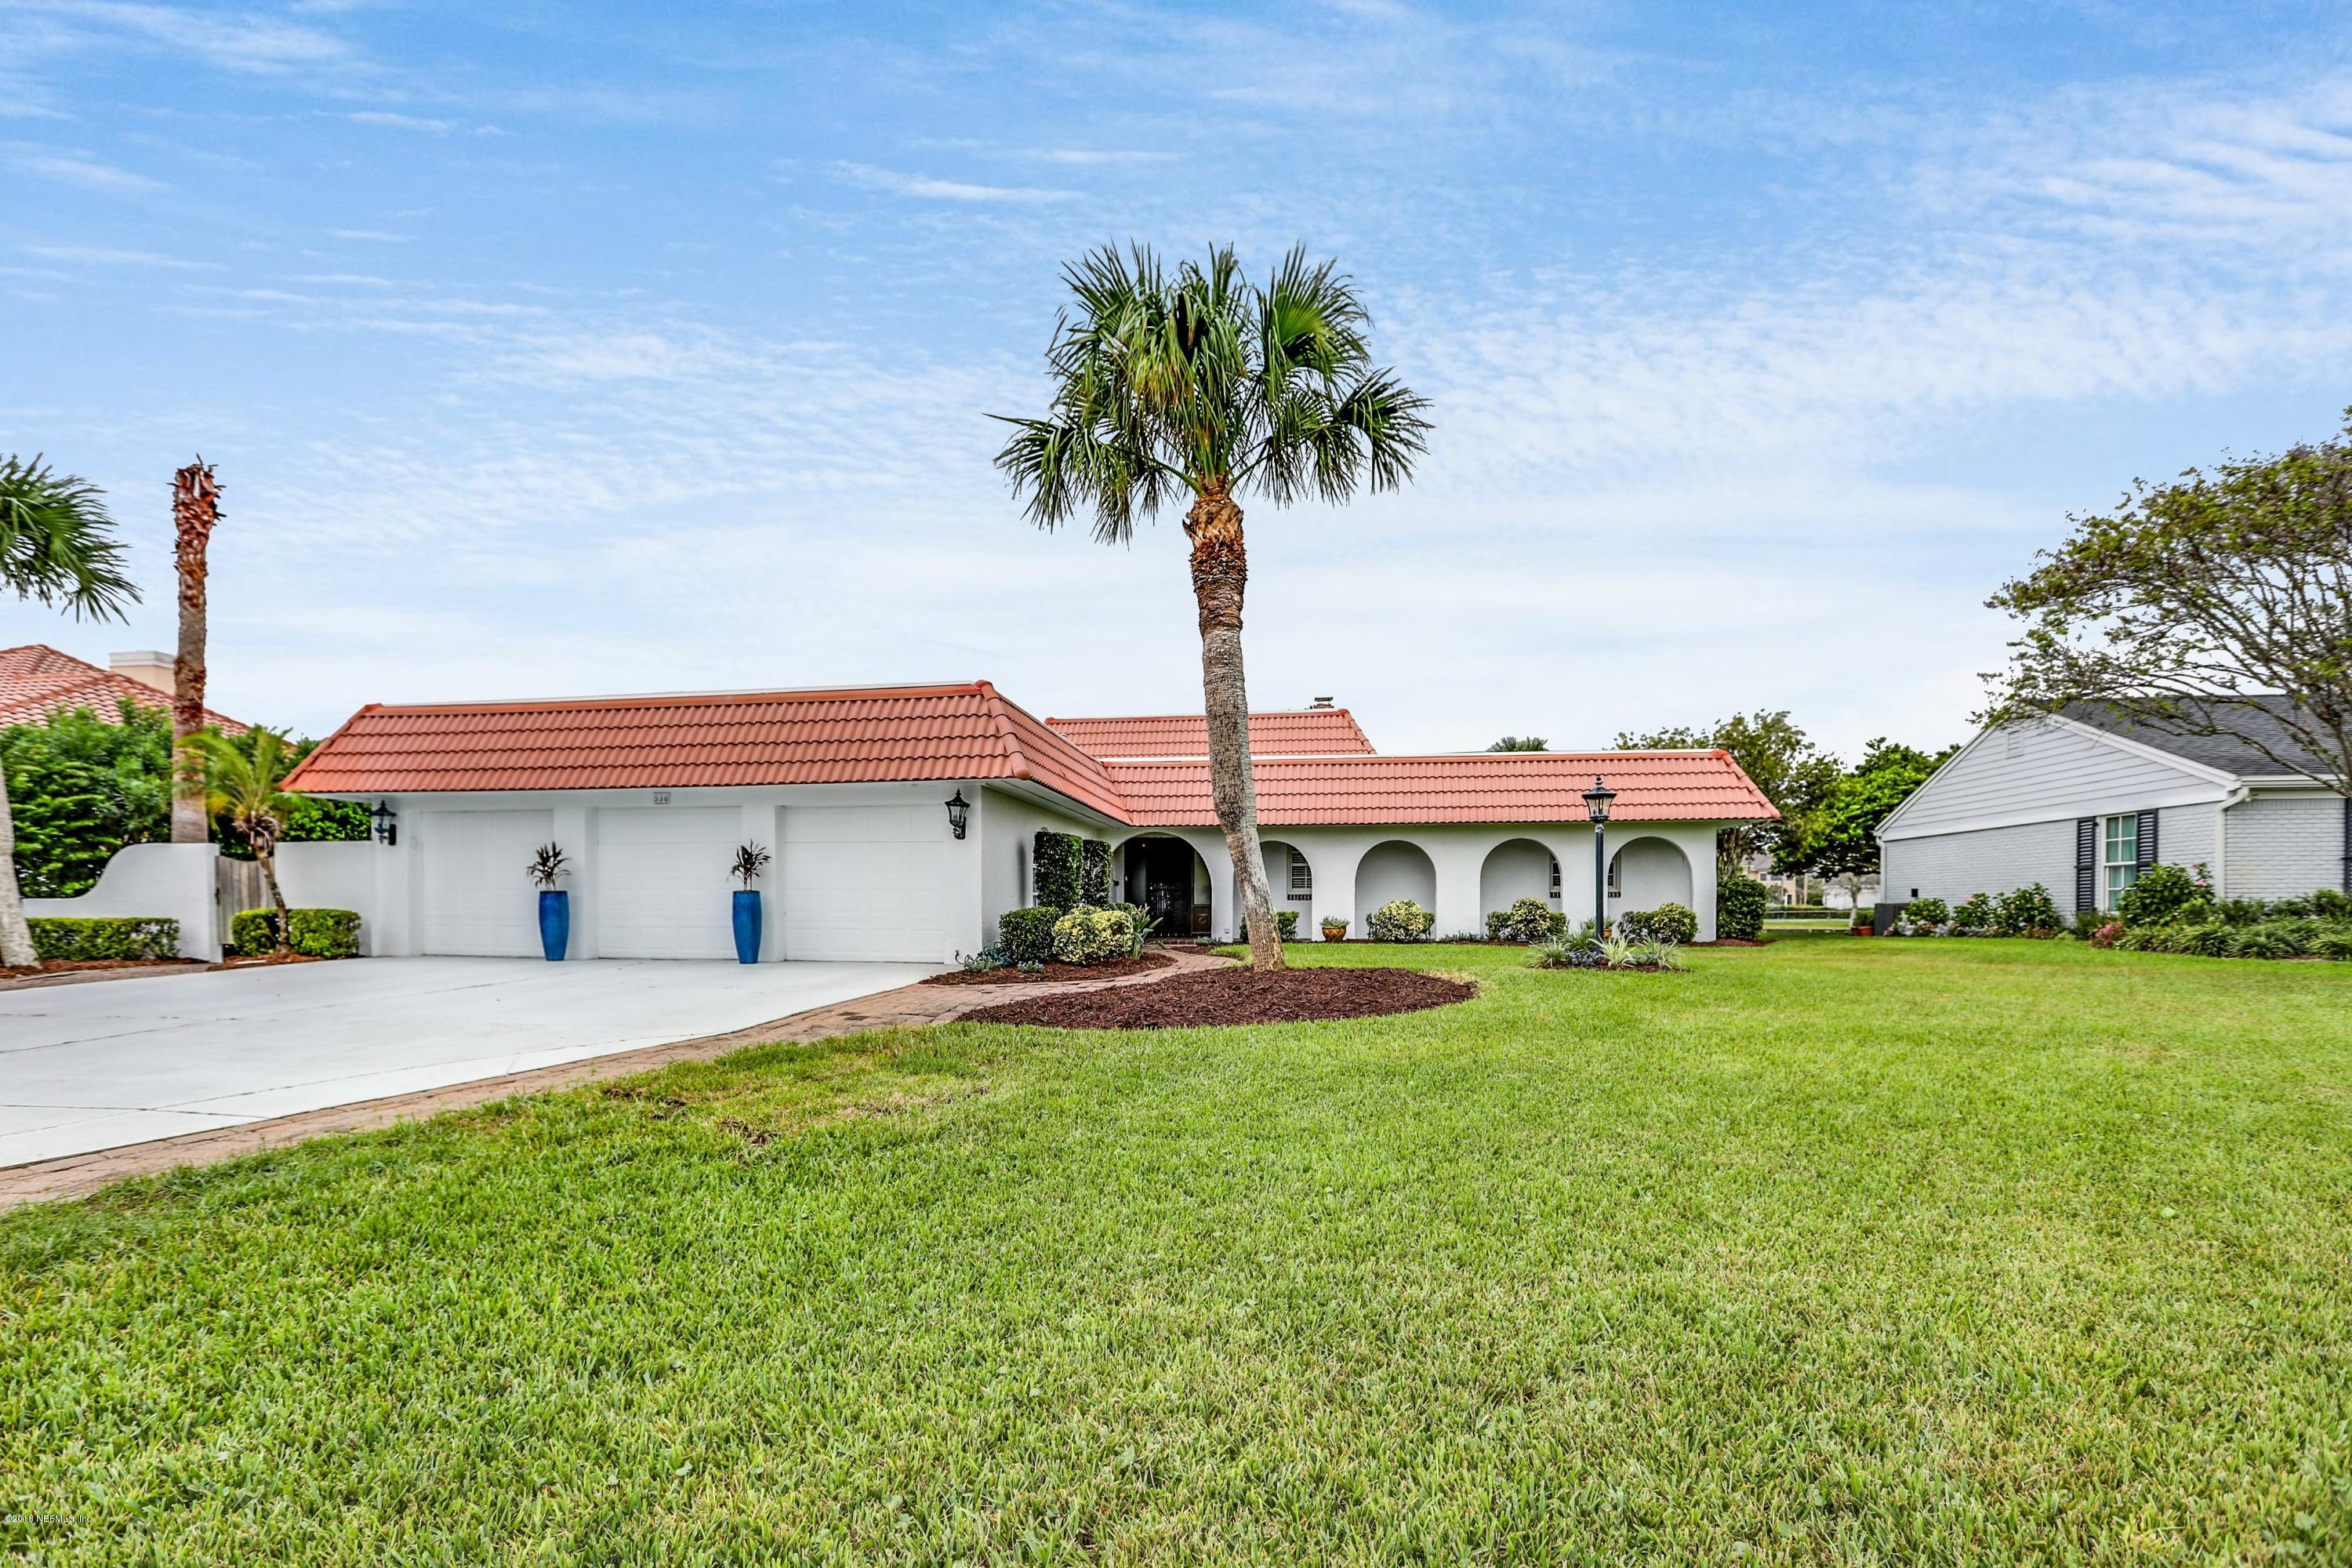 530 RUTILE, PONTE VEDRA BEACH, FLORIDA 32082, 4 Bedrooms Bedrooms, ,3 BathroomsBathrooms,Residential - single family,For sale,RUTILE,964779